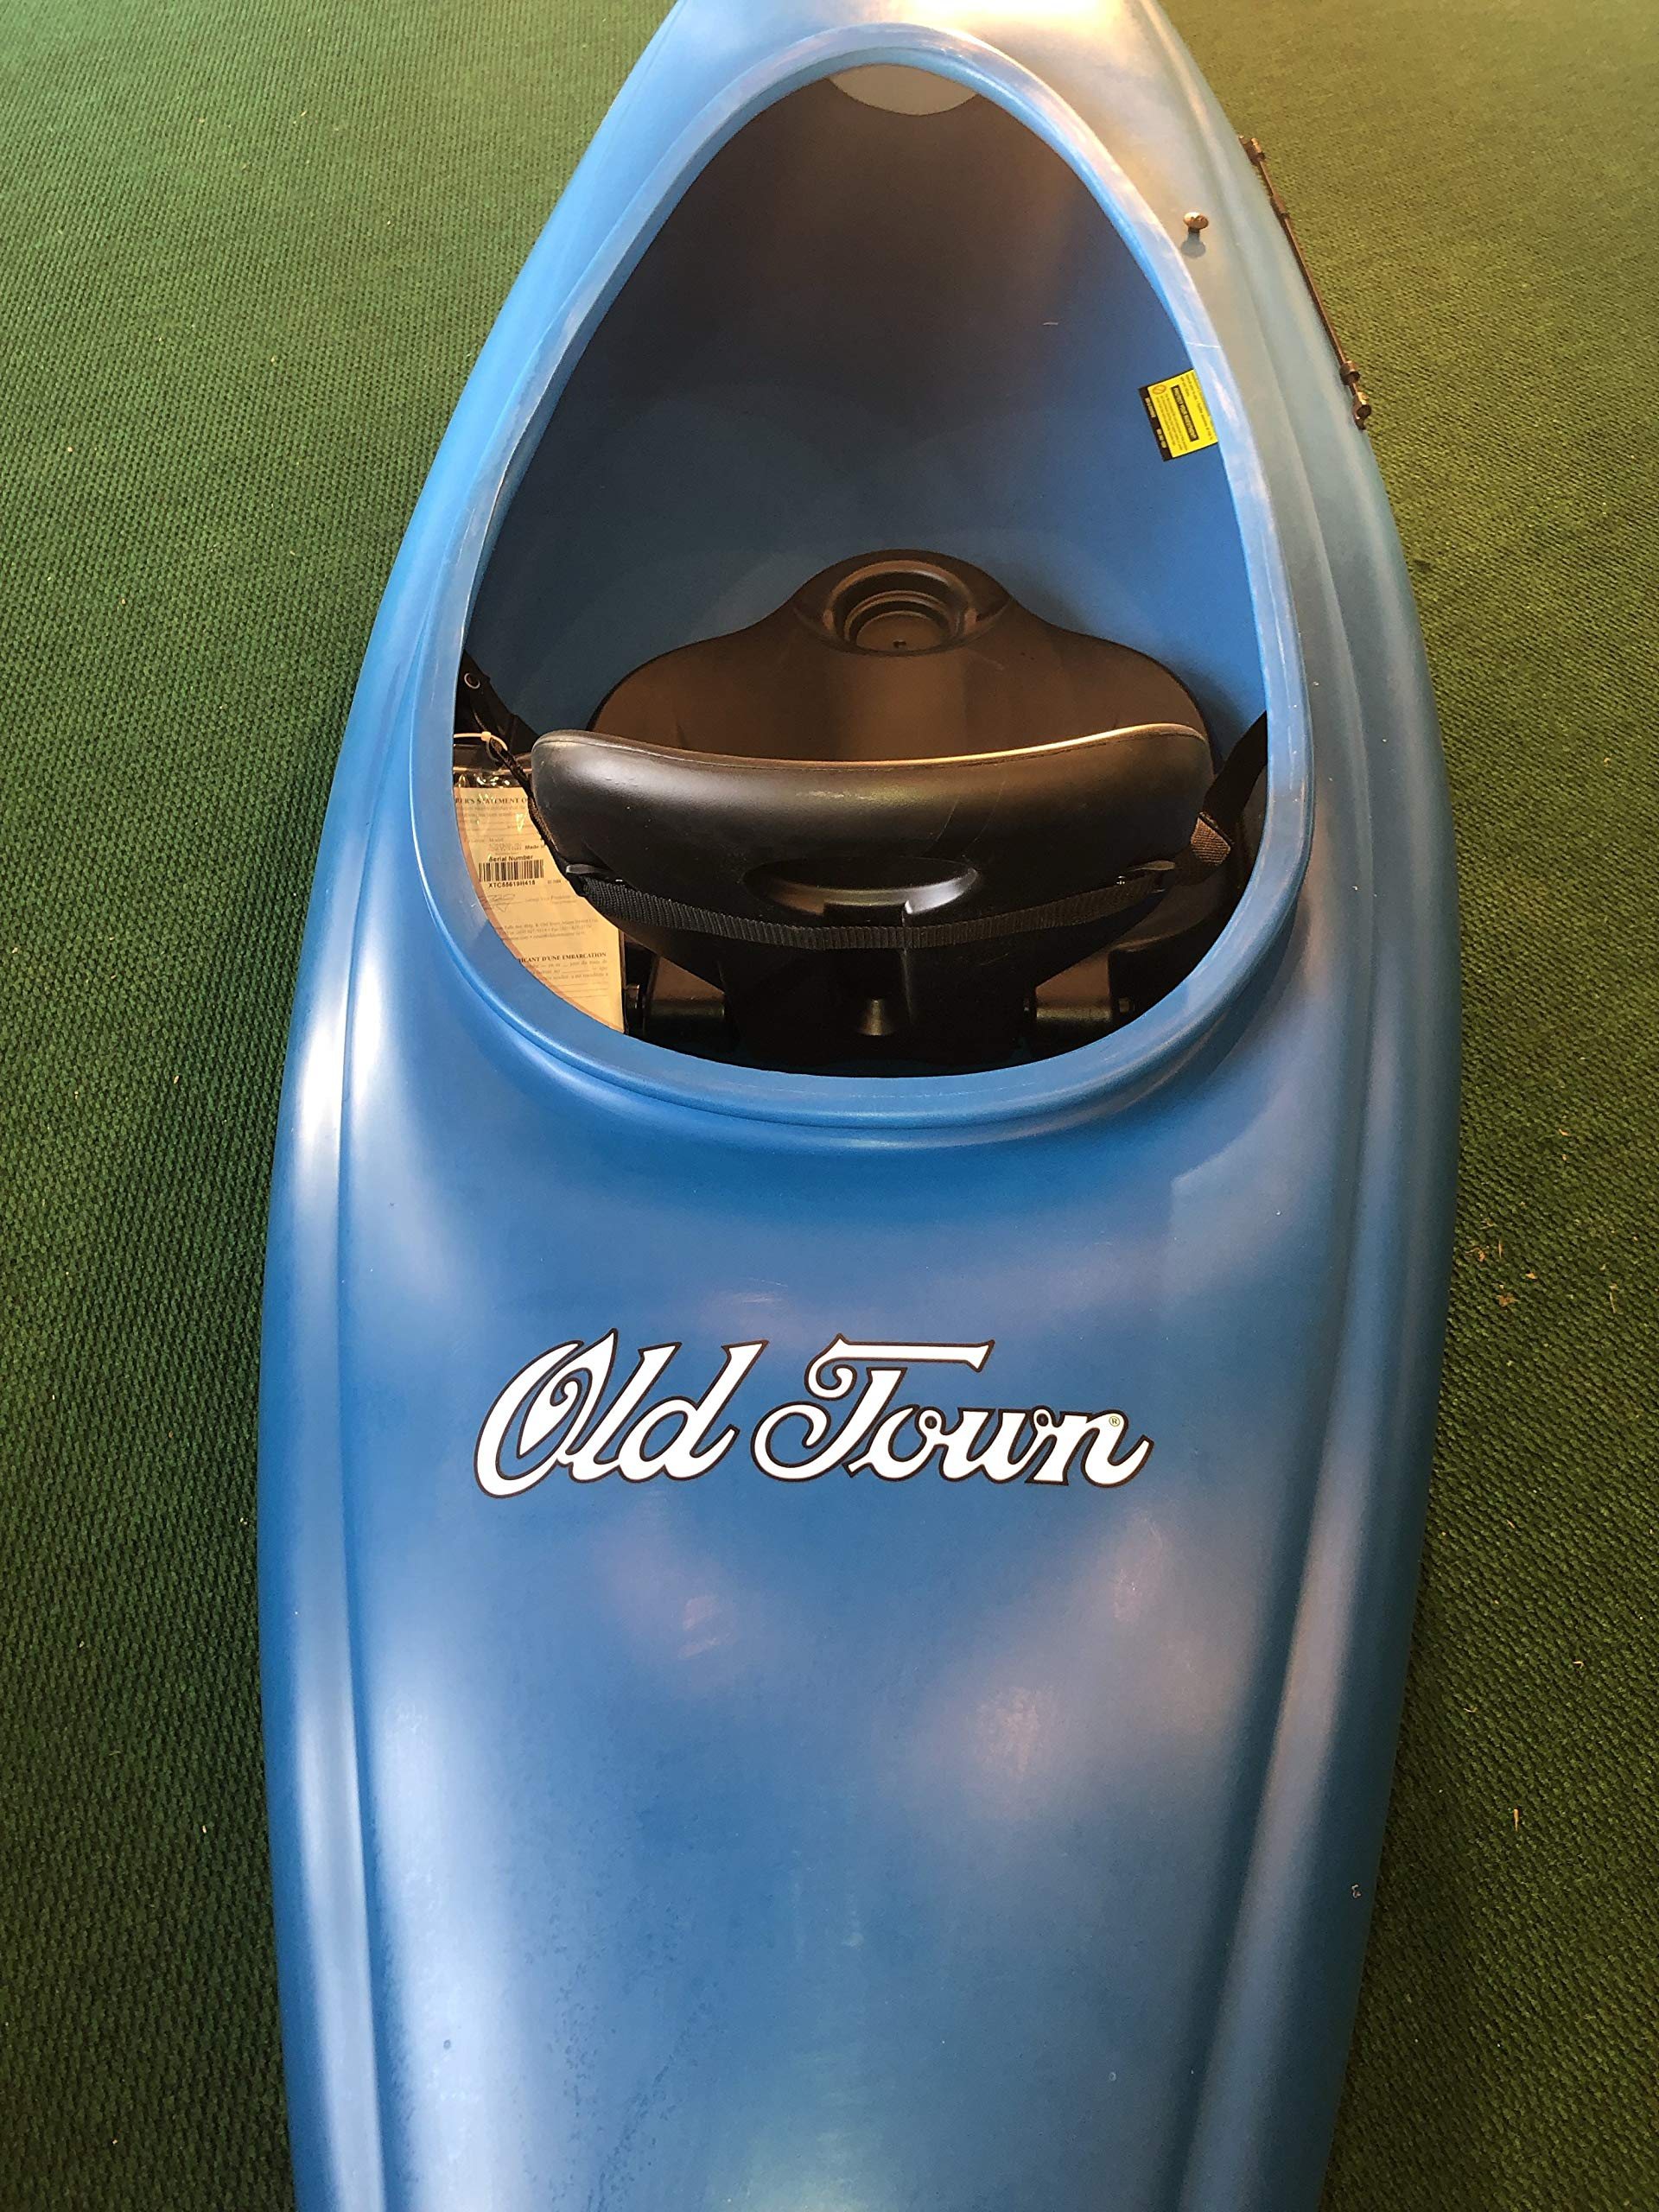 Old Town Classic Otter Plus Kayak(New) - 01.5534.0019 by Old Town